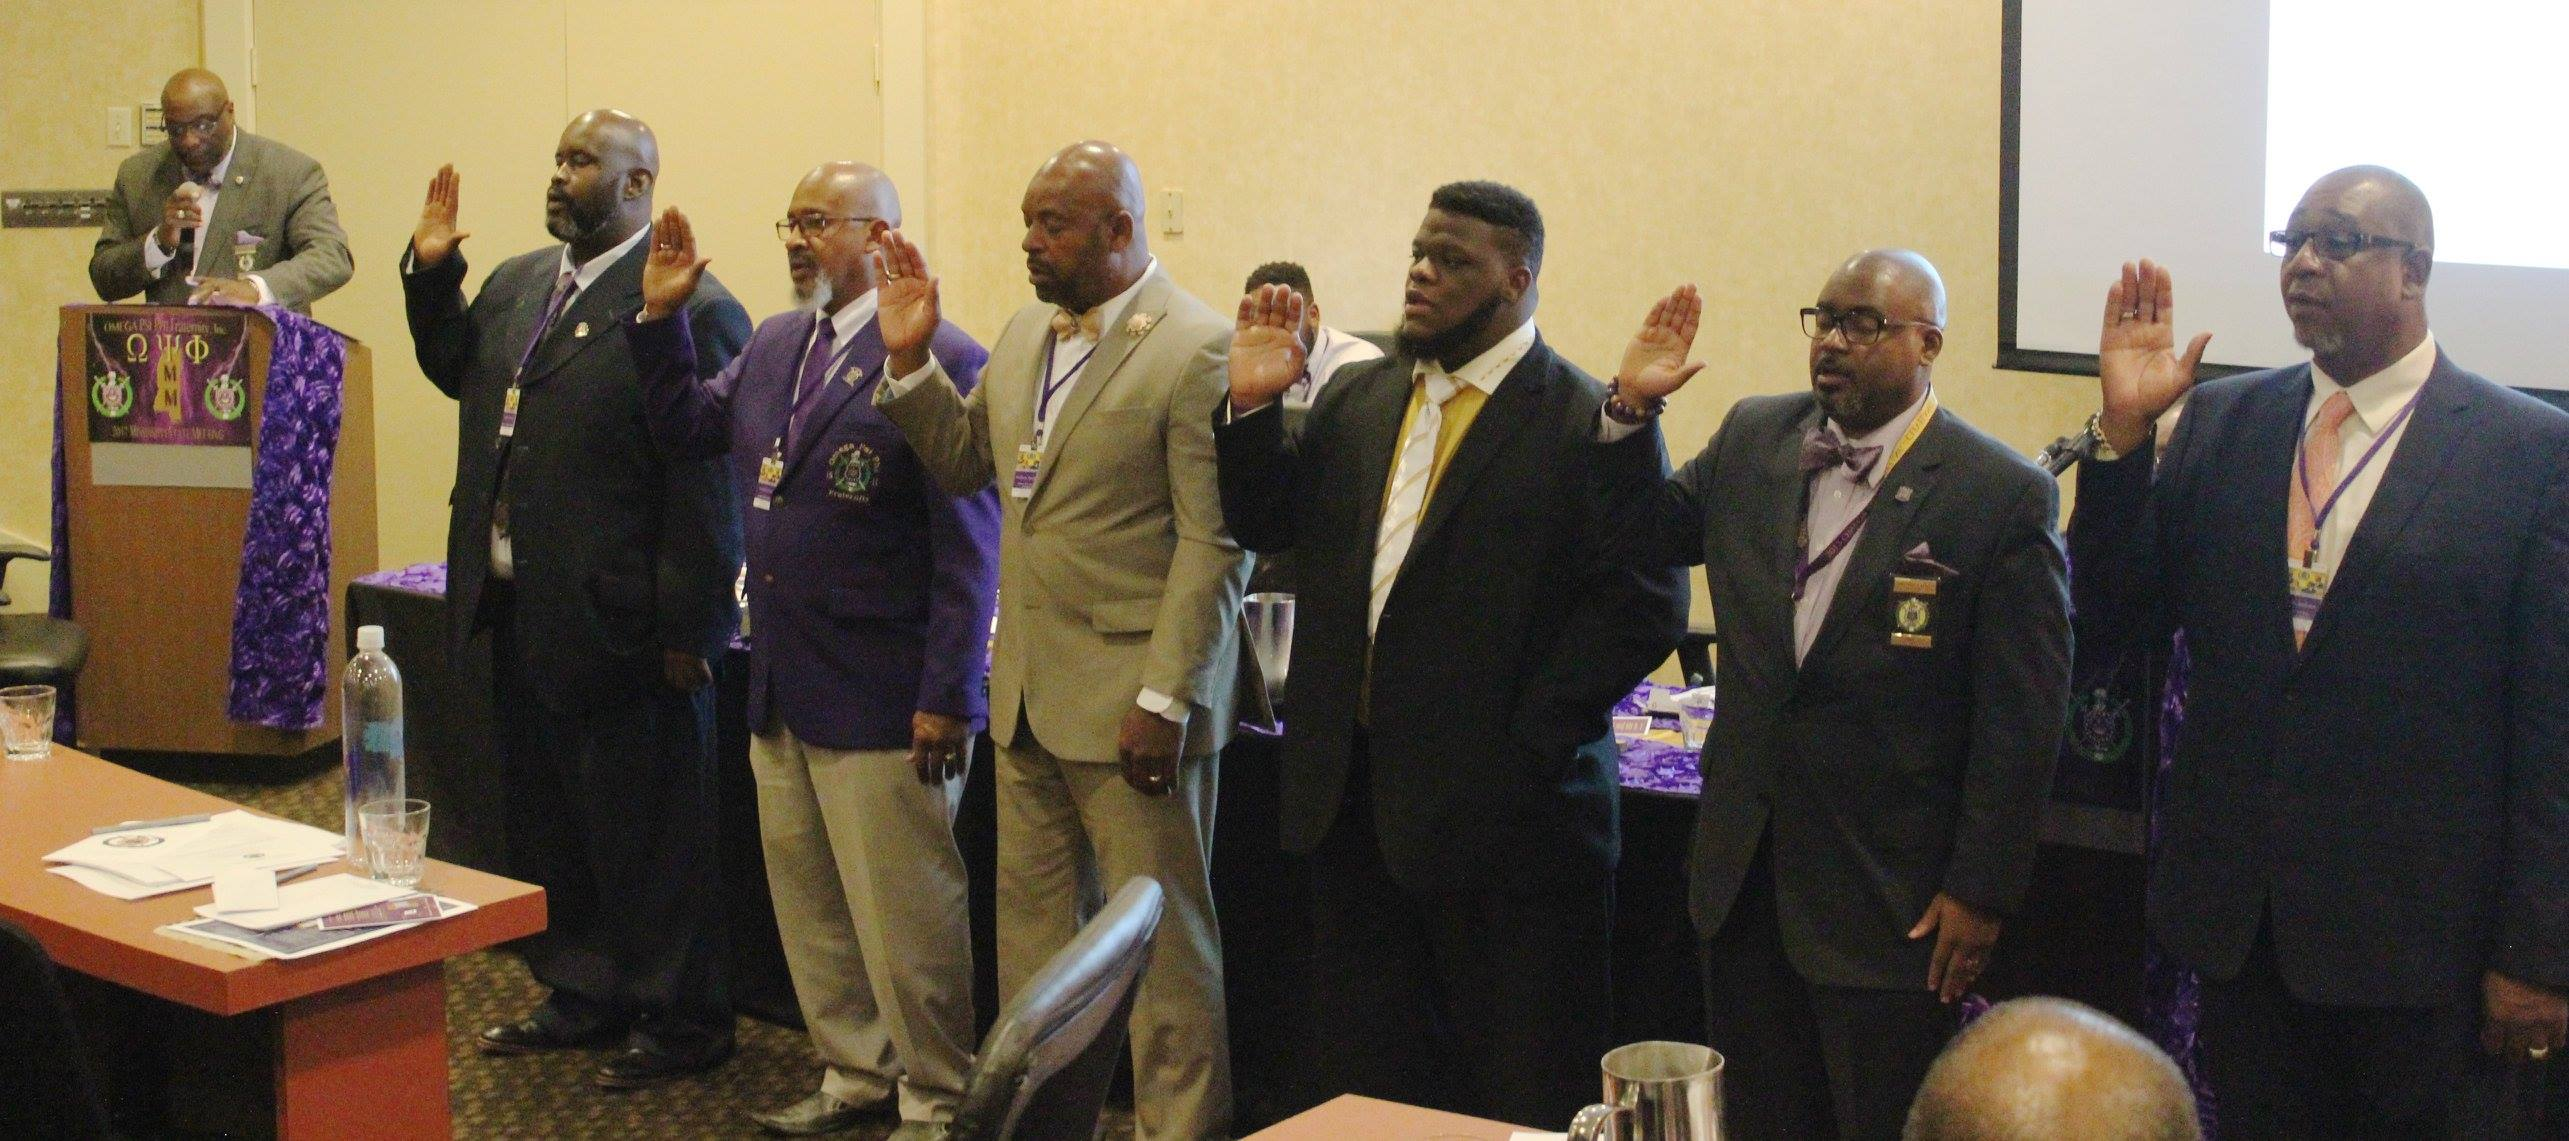 Home page welcome to the website of the state of mississippi organization of omega psi phi fraternity incorporated buycottarizona Image collections